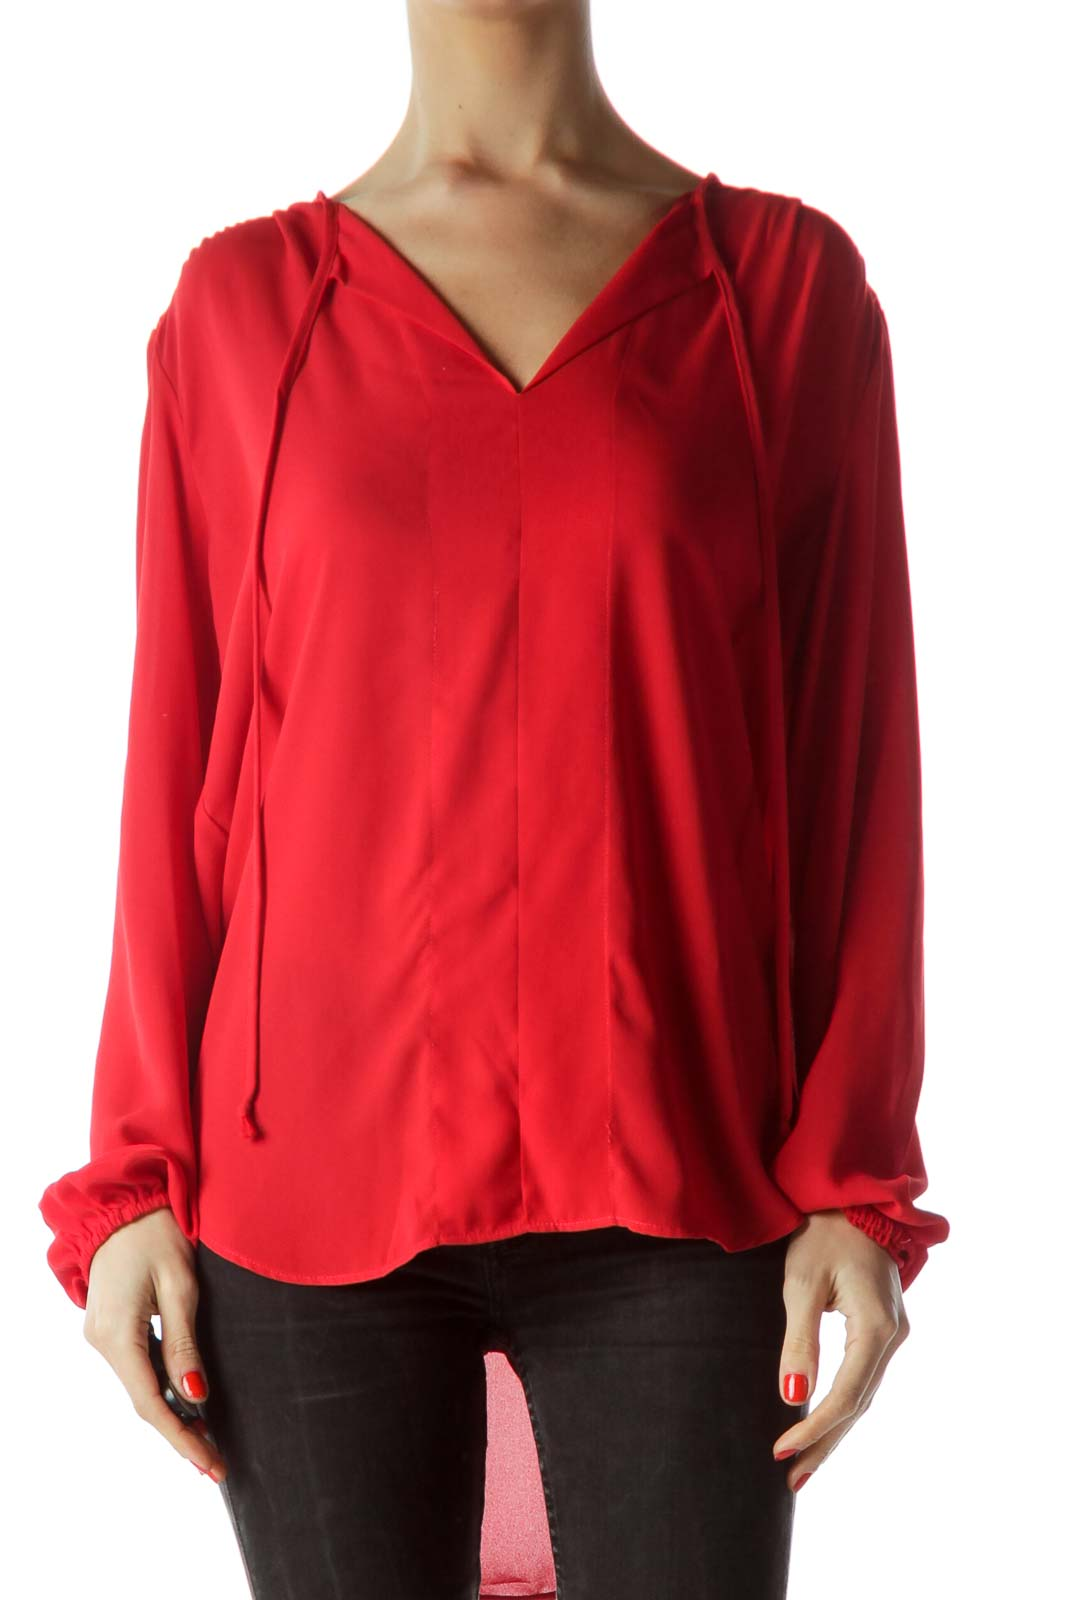 e425a0b21cdeb Shop Red V-Neck Long Sleeve Blouse clothing and handbags at SilkRoll ...